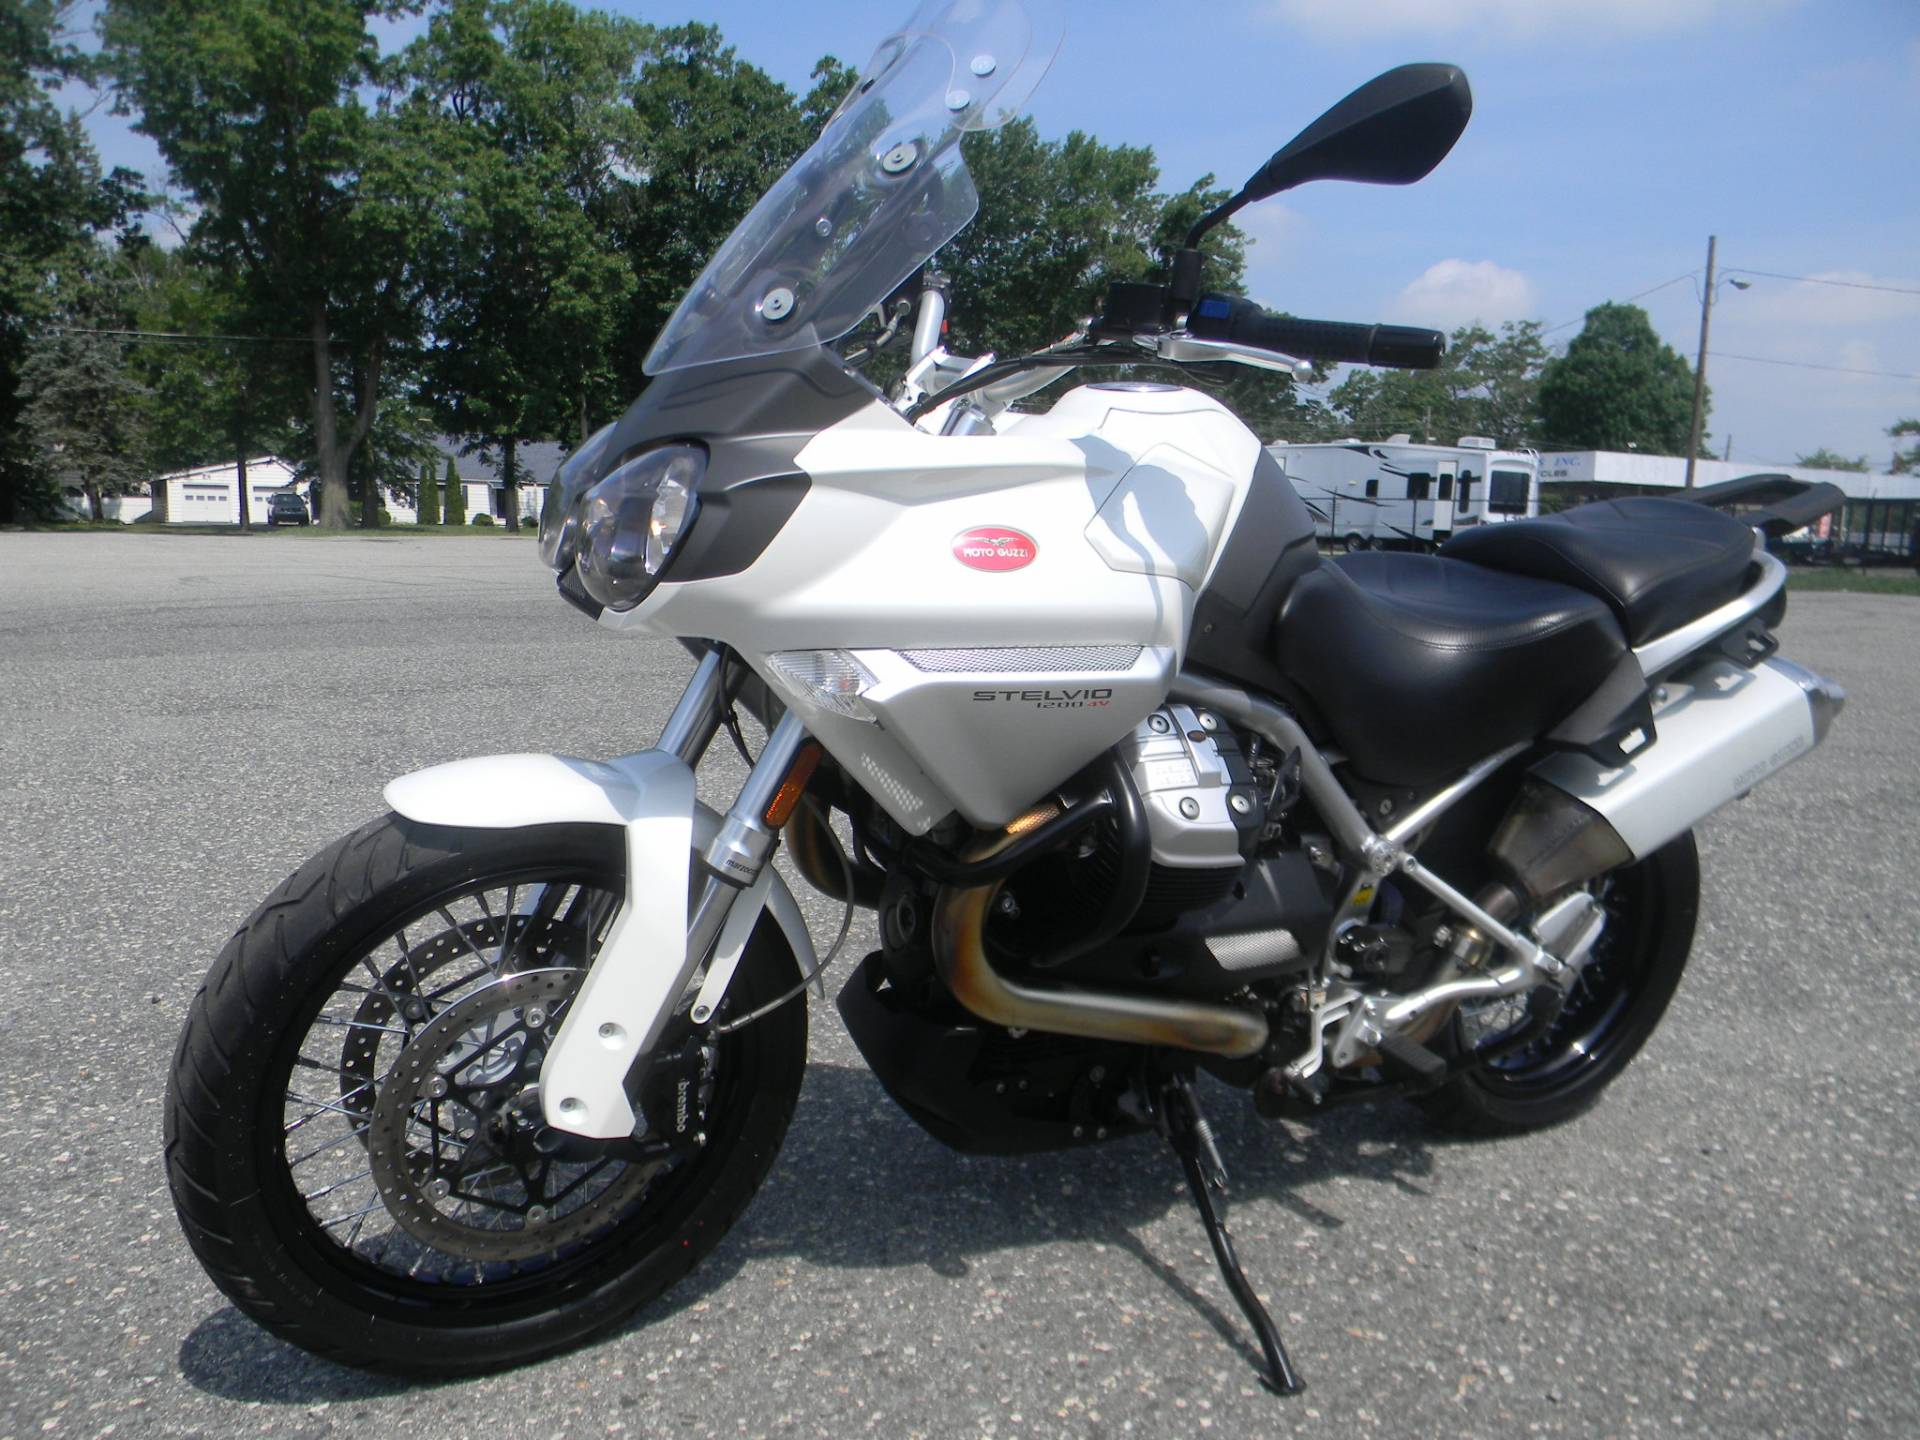 2011 Moto Guzzi Stelvio 1200 ABS in Springfield, Massachusetts - Photo 5